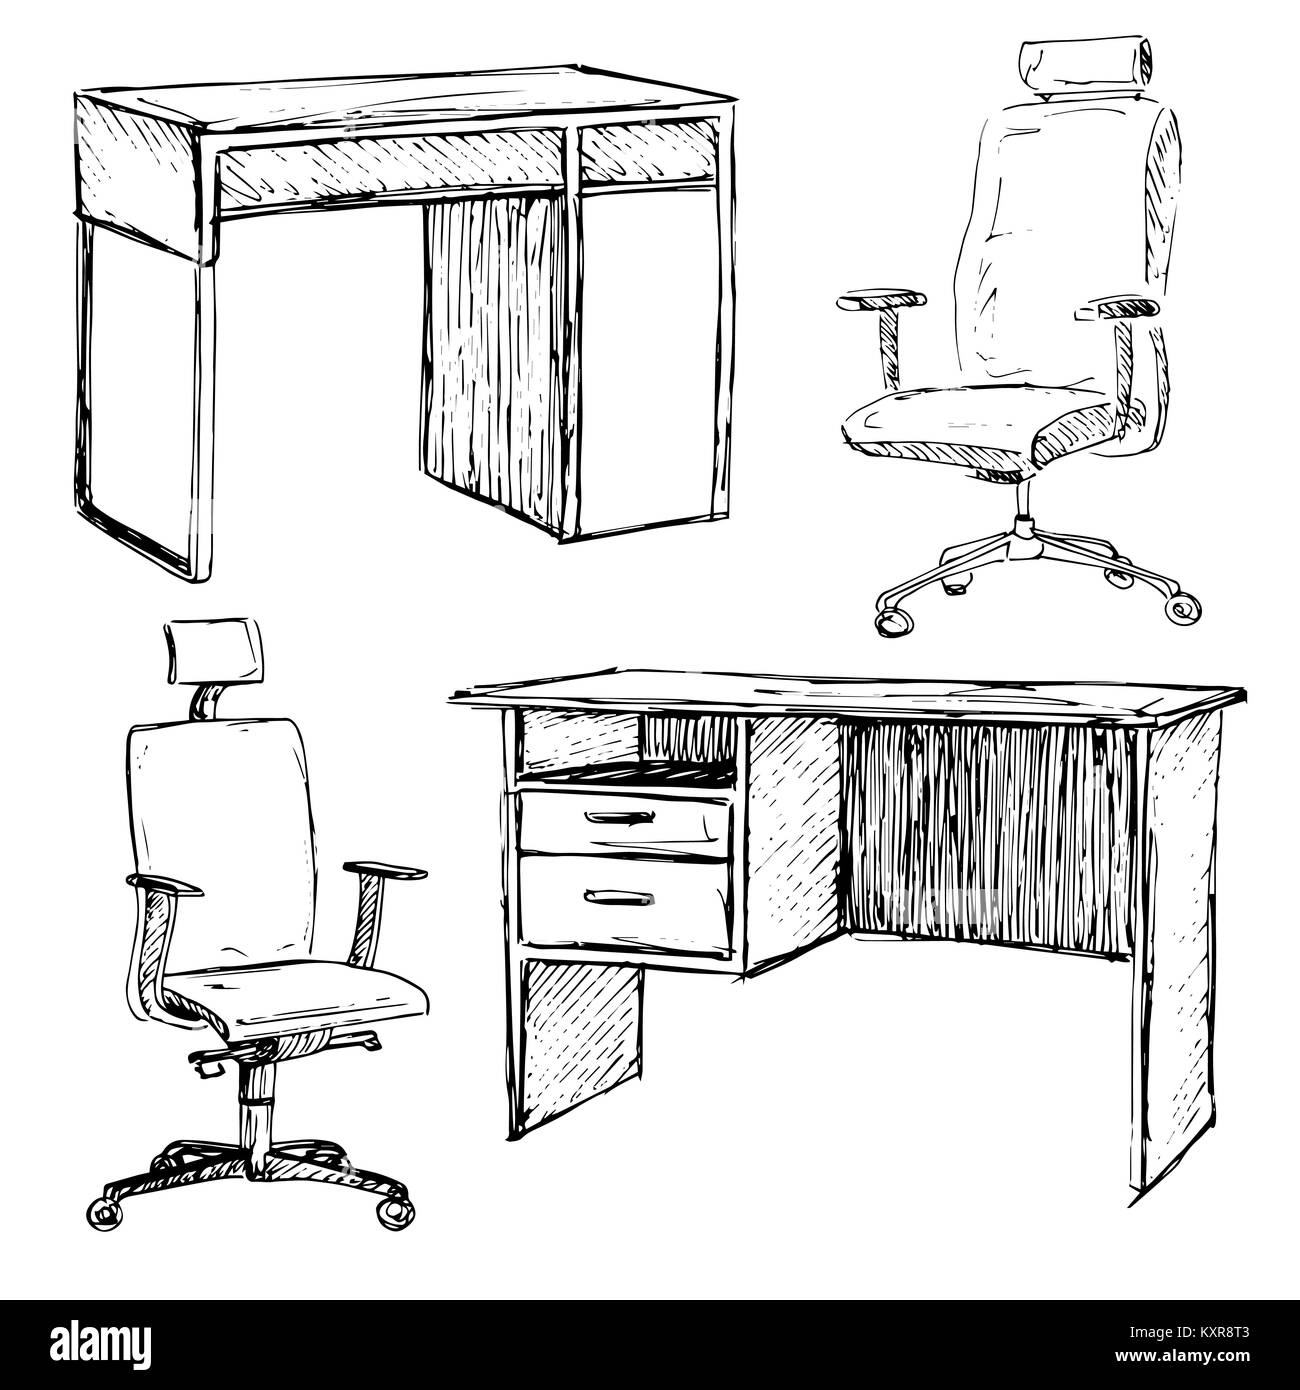 Sketch Set Isolated Furniture Different Office Chairs And Desks Stock Vector Image Art Alamy